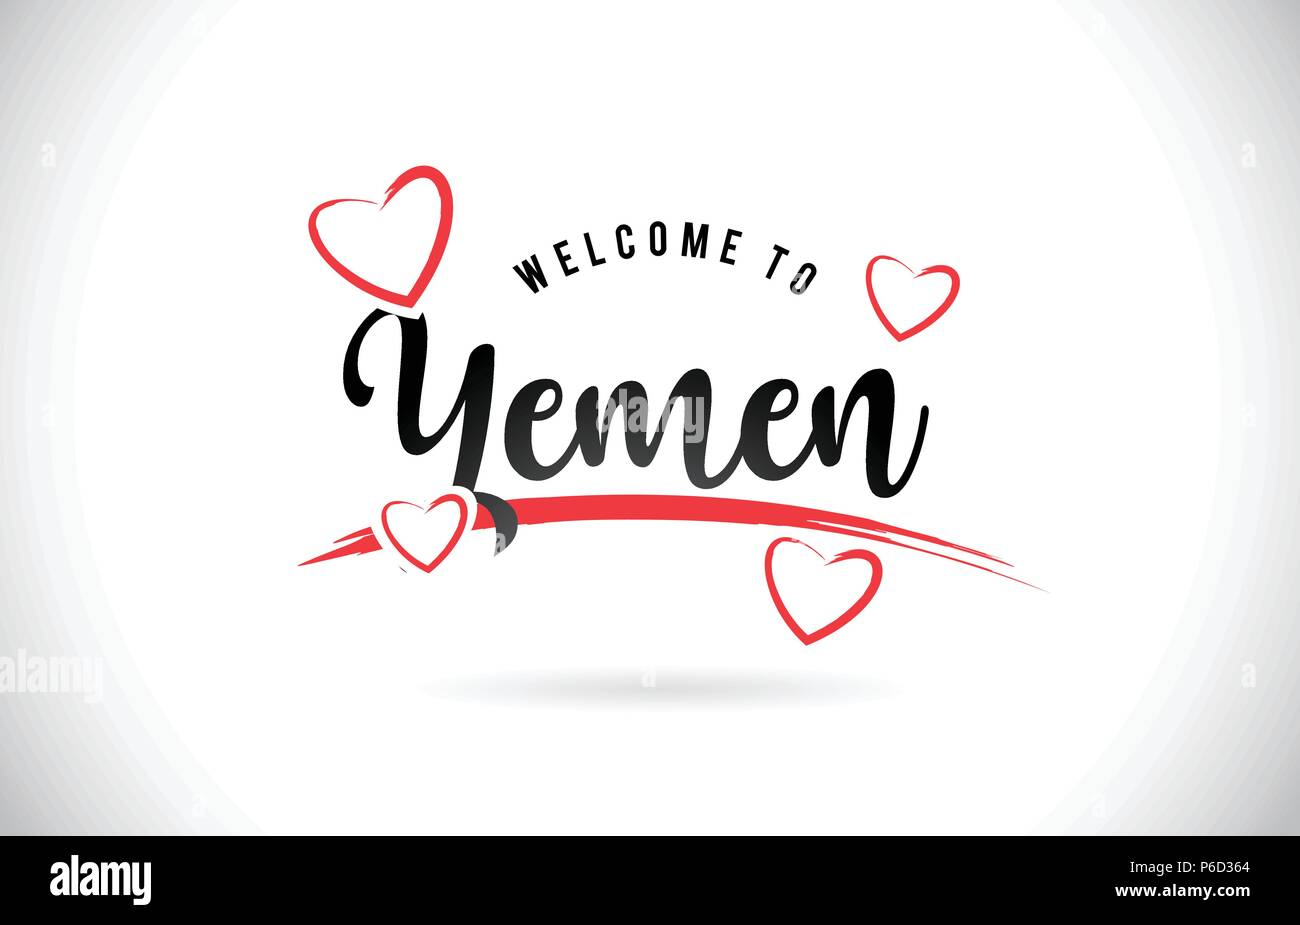 Yemen Welcome To Word Text with Handwritten Font and Red Love Hearts Vector Image Illustration Eps. - Stock Vector